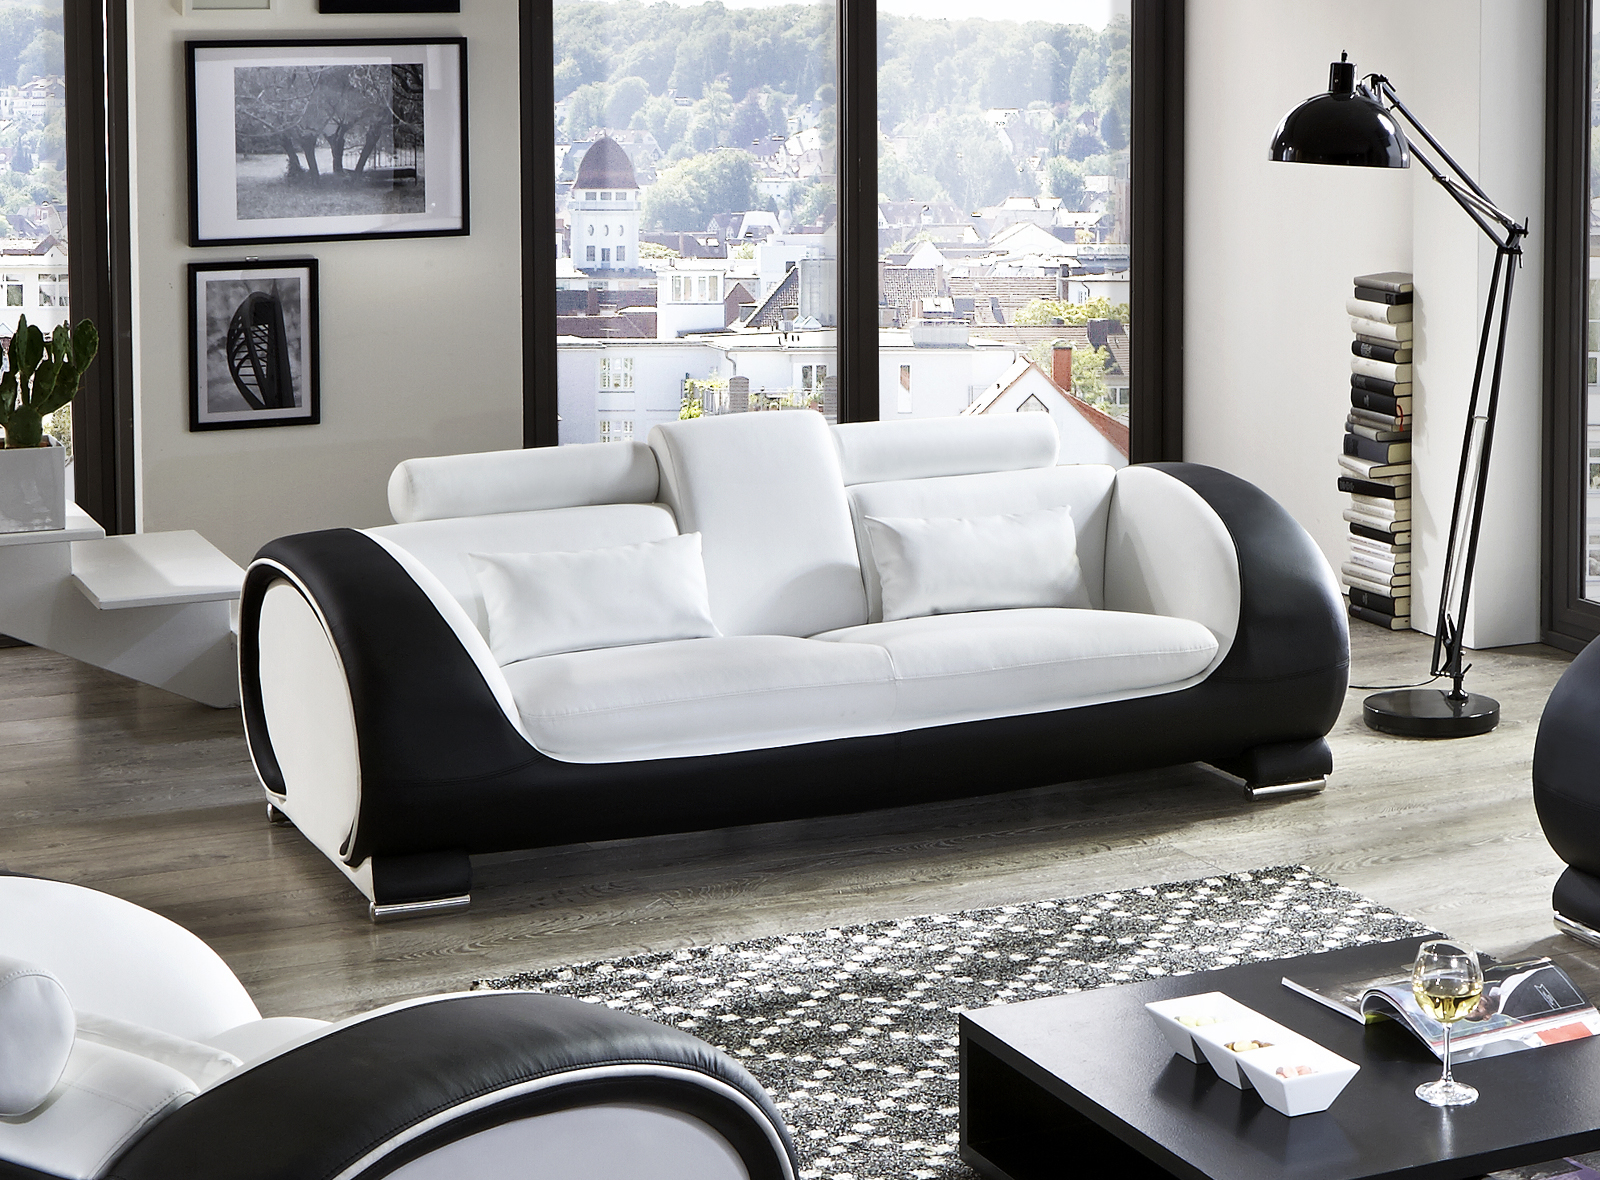 sam design garnitur sofa 3tlg in wei schwarz vigo 3 2 1. Black Bedroom Furniture Sets. Home Design Ideas